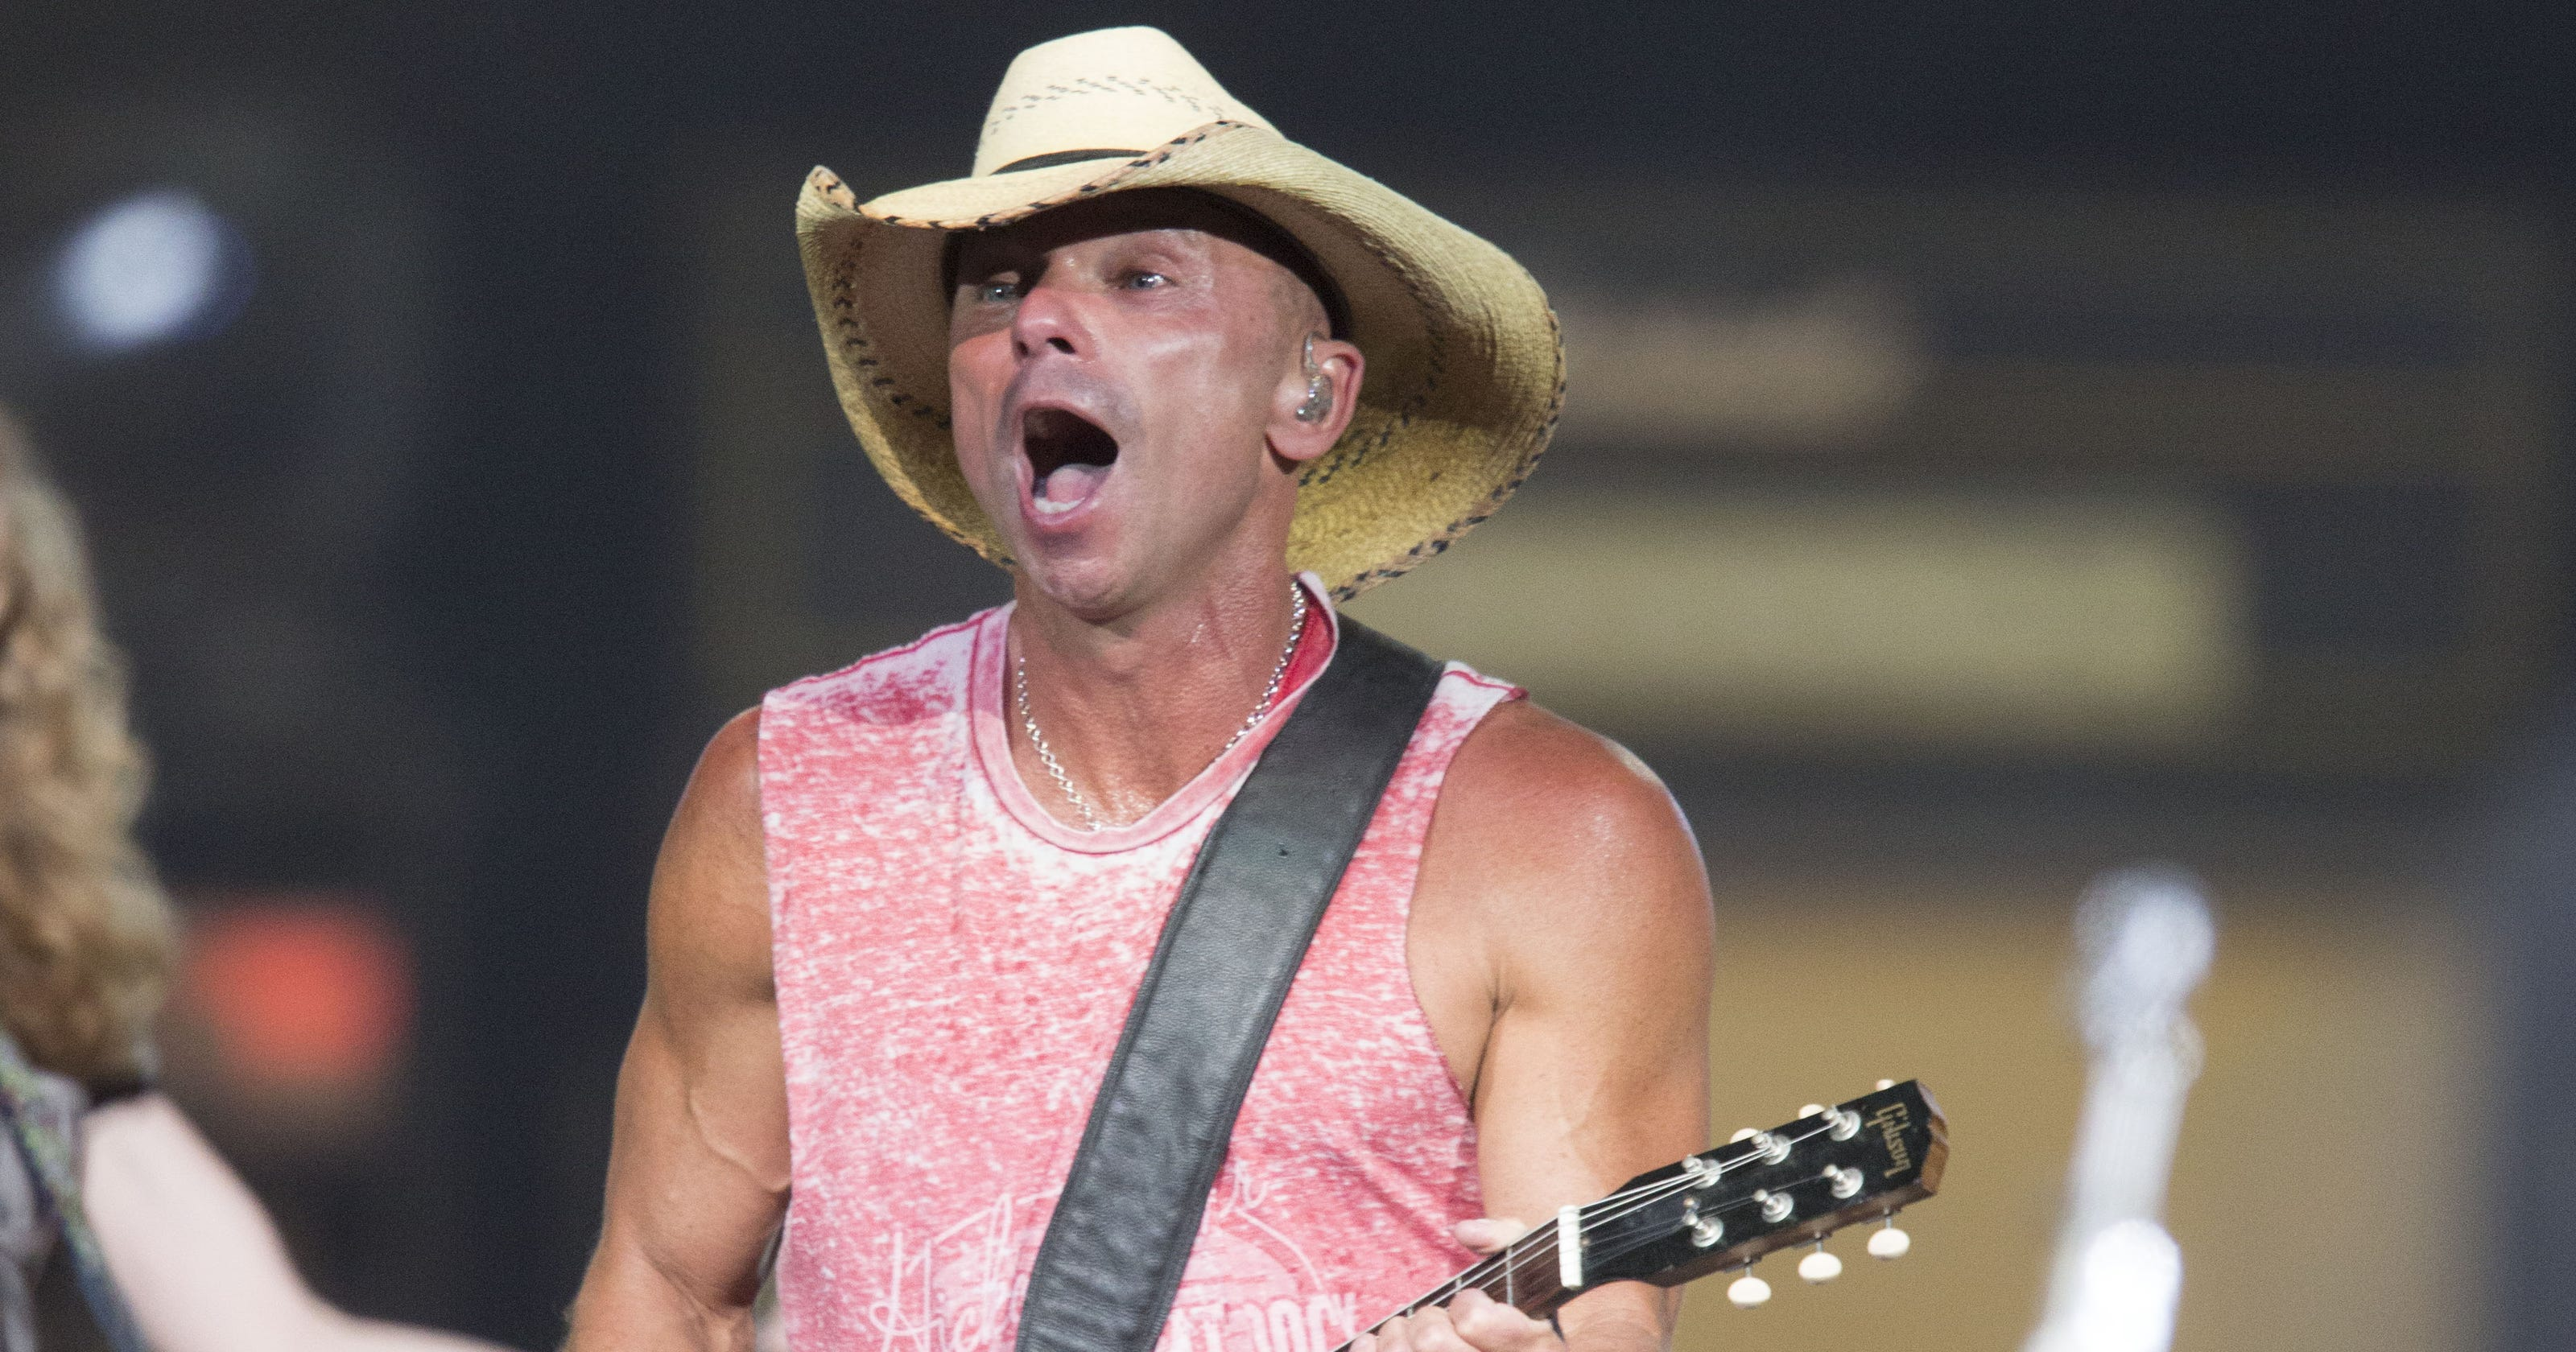 c00b15c1aae Review  Kenny Chesney s Big Revival rolls into Glendale